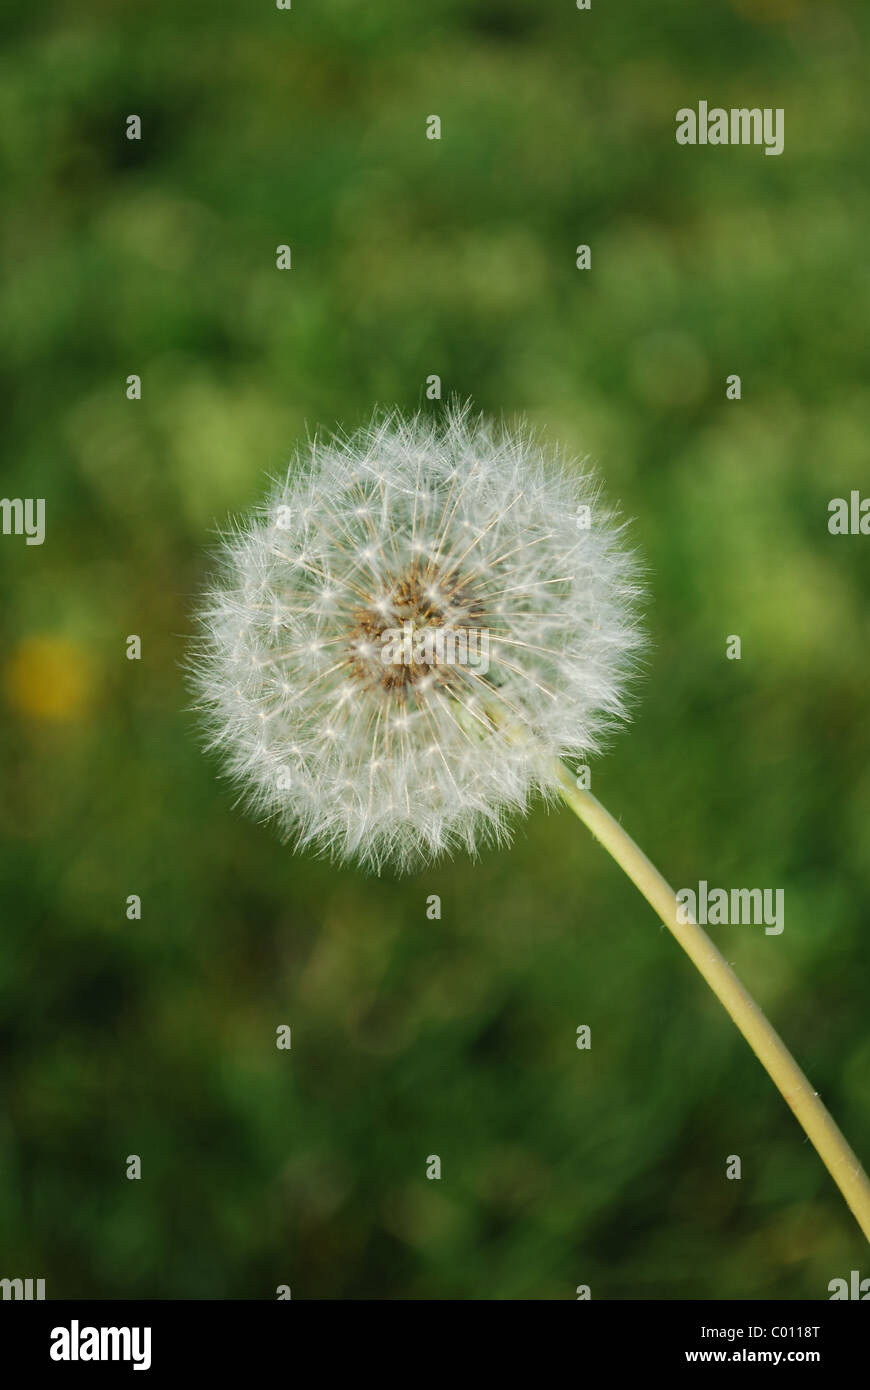 white dandelion on grass background - Stock Image